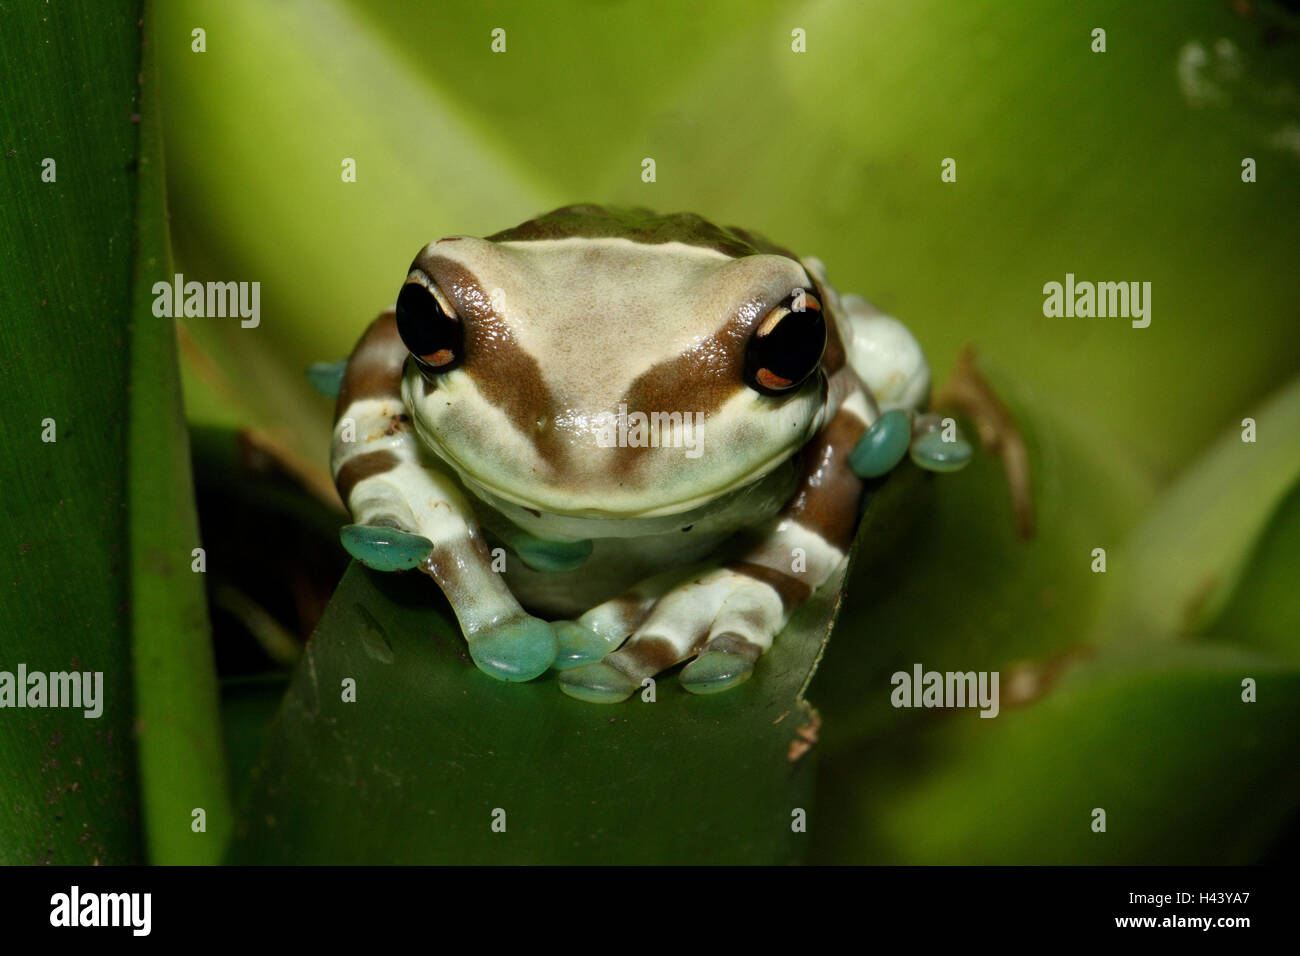 Feuillage crapaud grenouille, feuilles, s'asseoir, portrait, pits-arbre feuillage crapaud grenouille, grenouille, Photo Stock